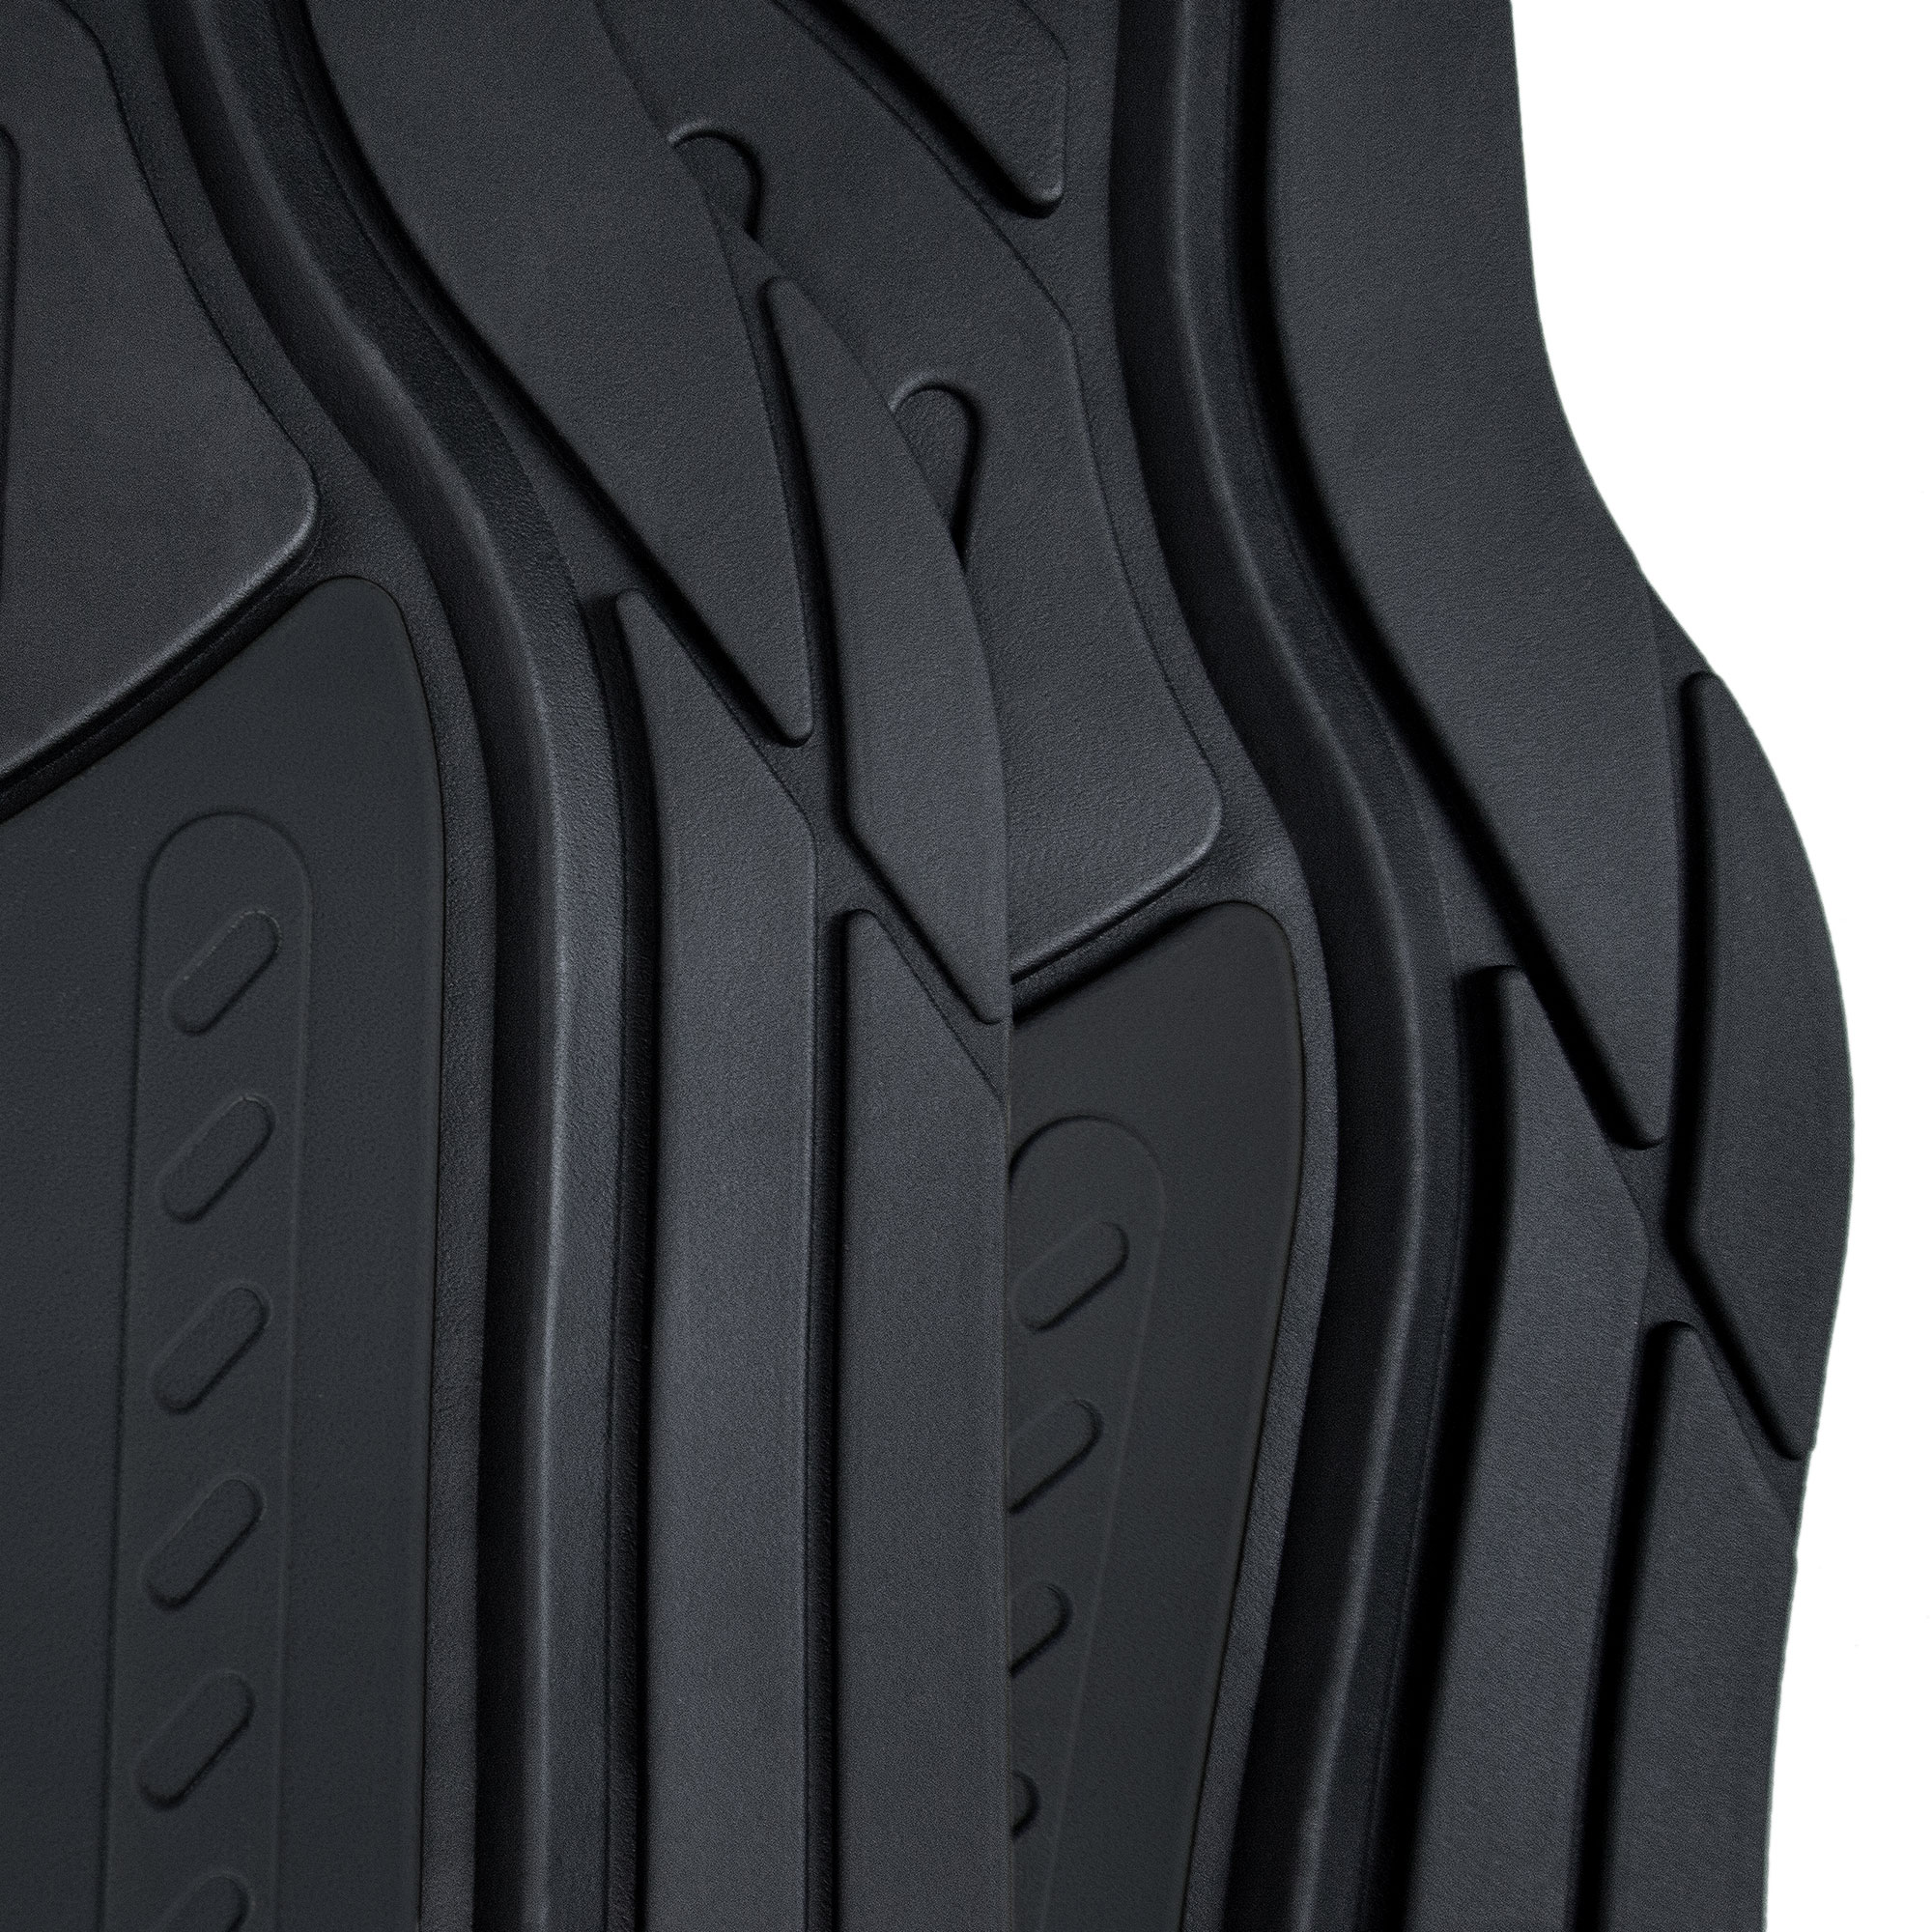 thumbnail 4 - Car Floor Mats for All Weather Rubber 2-Tone Design Heavy Duty - 4 Pc Set